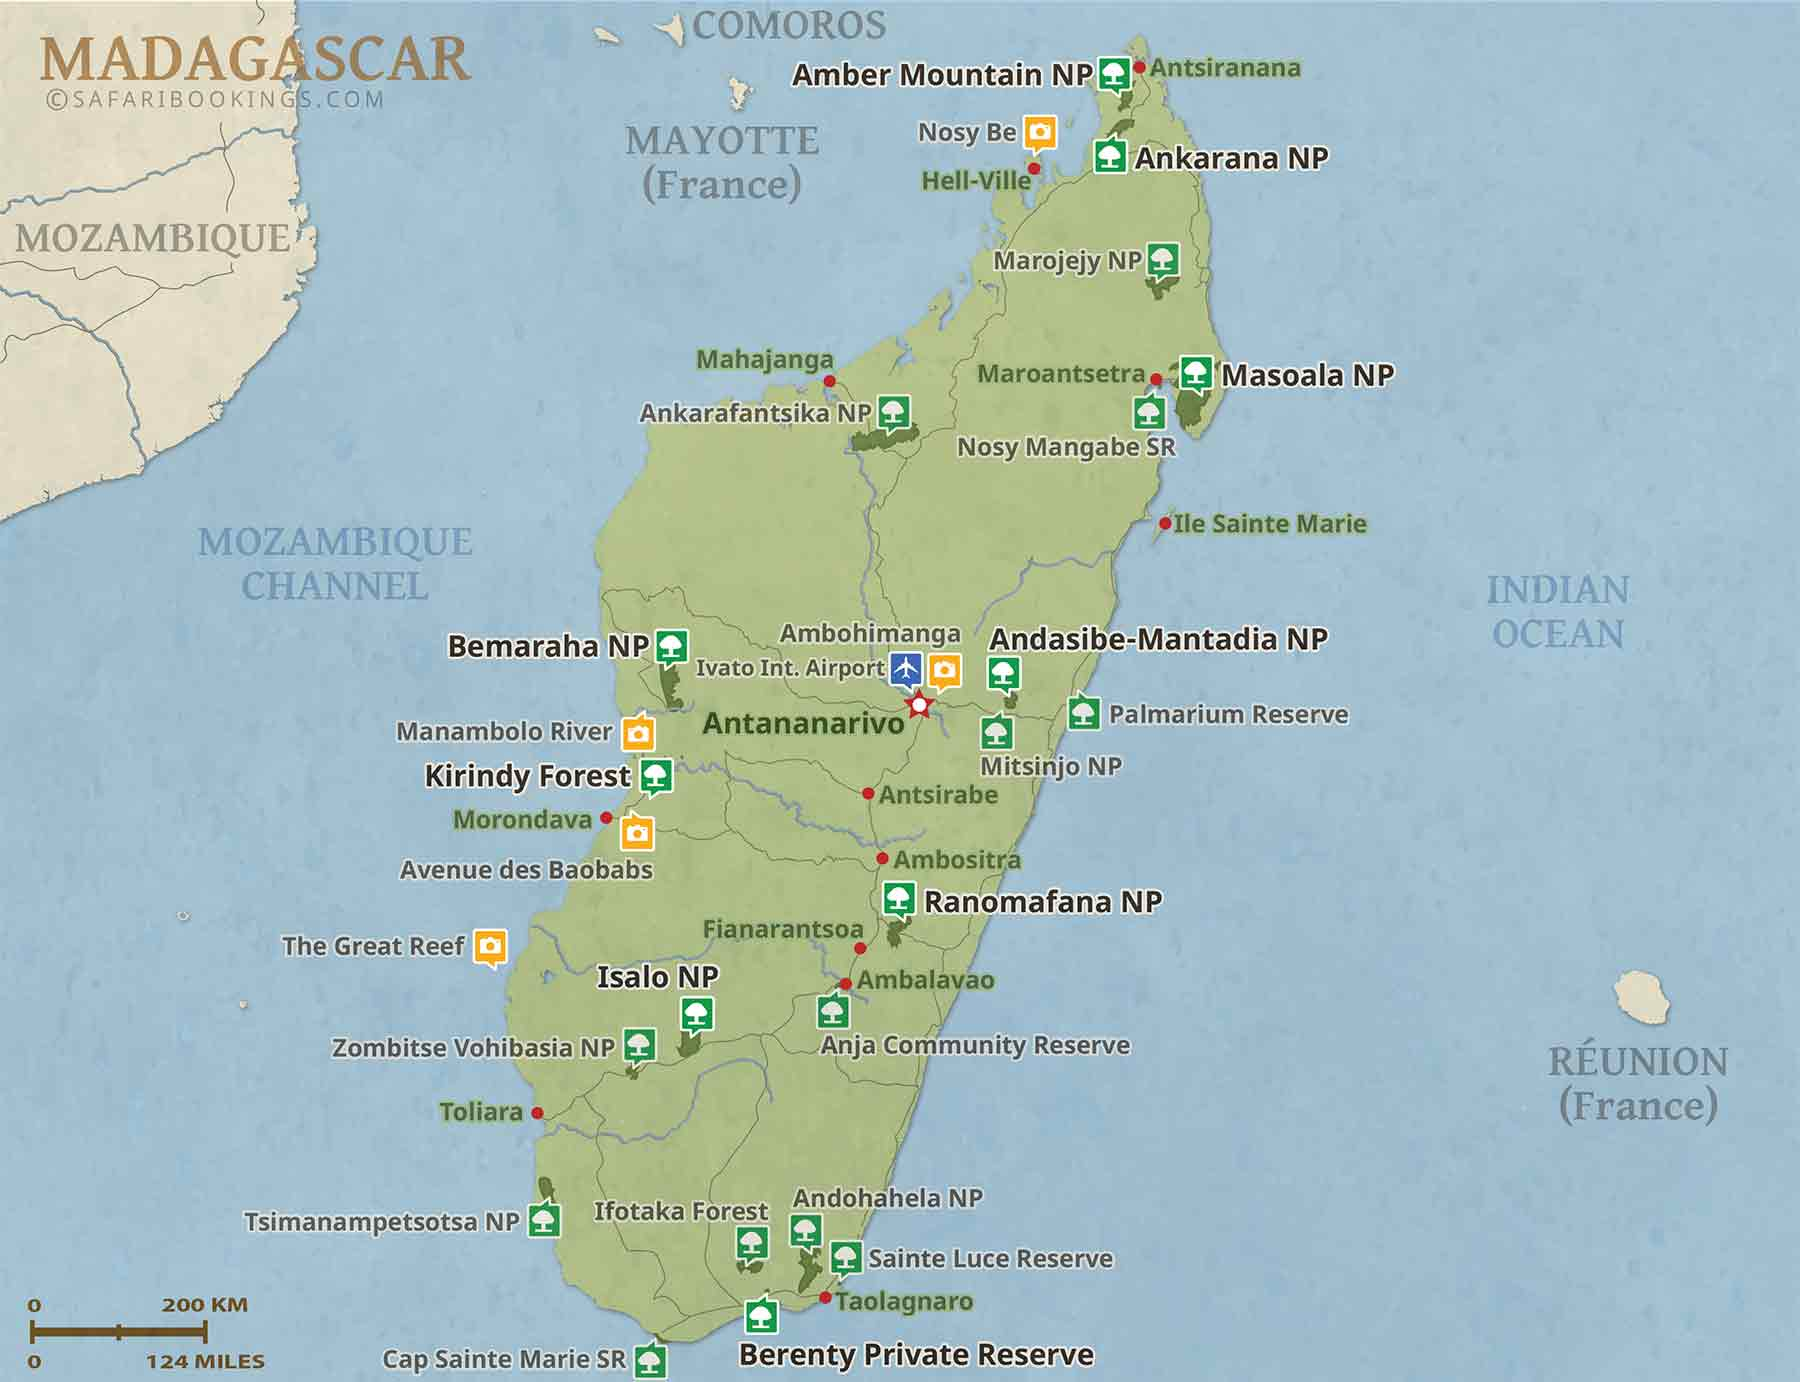 Detailed Map of Madagascar National Parks